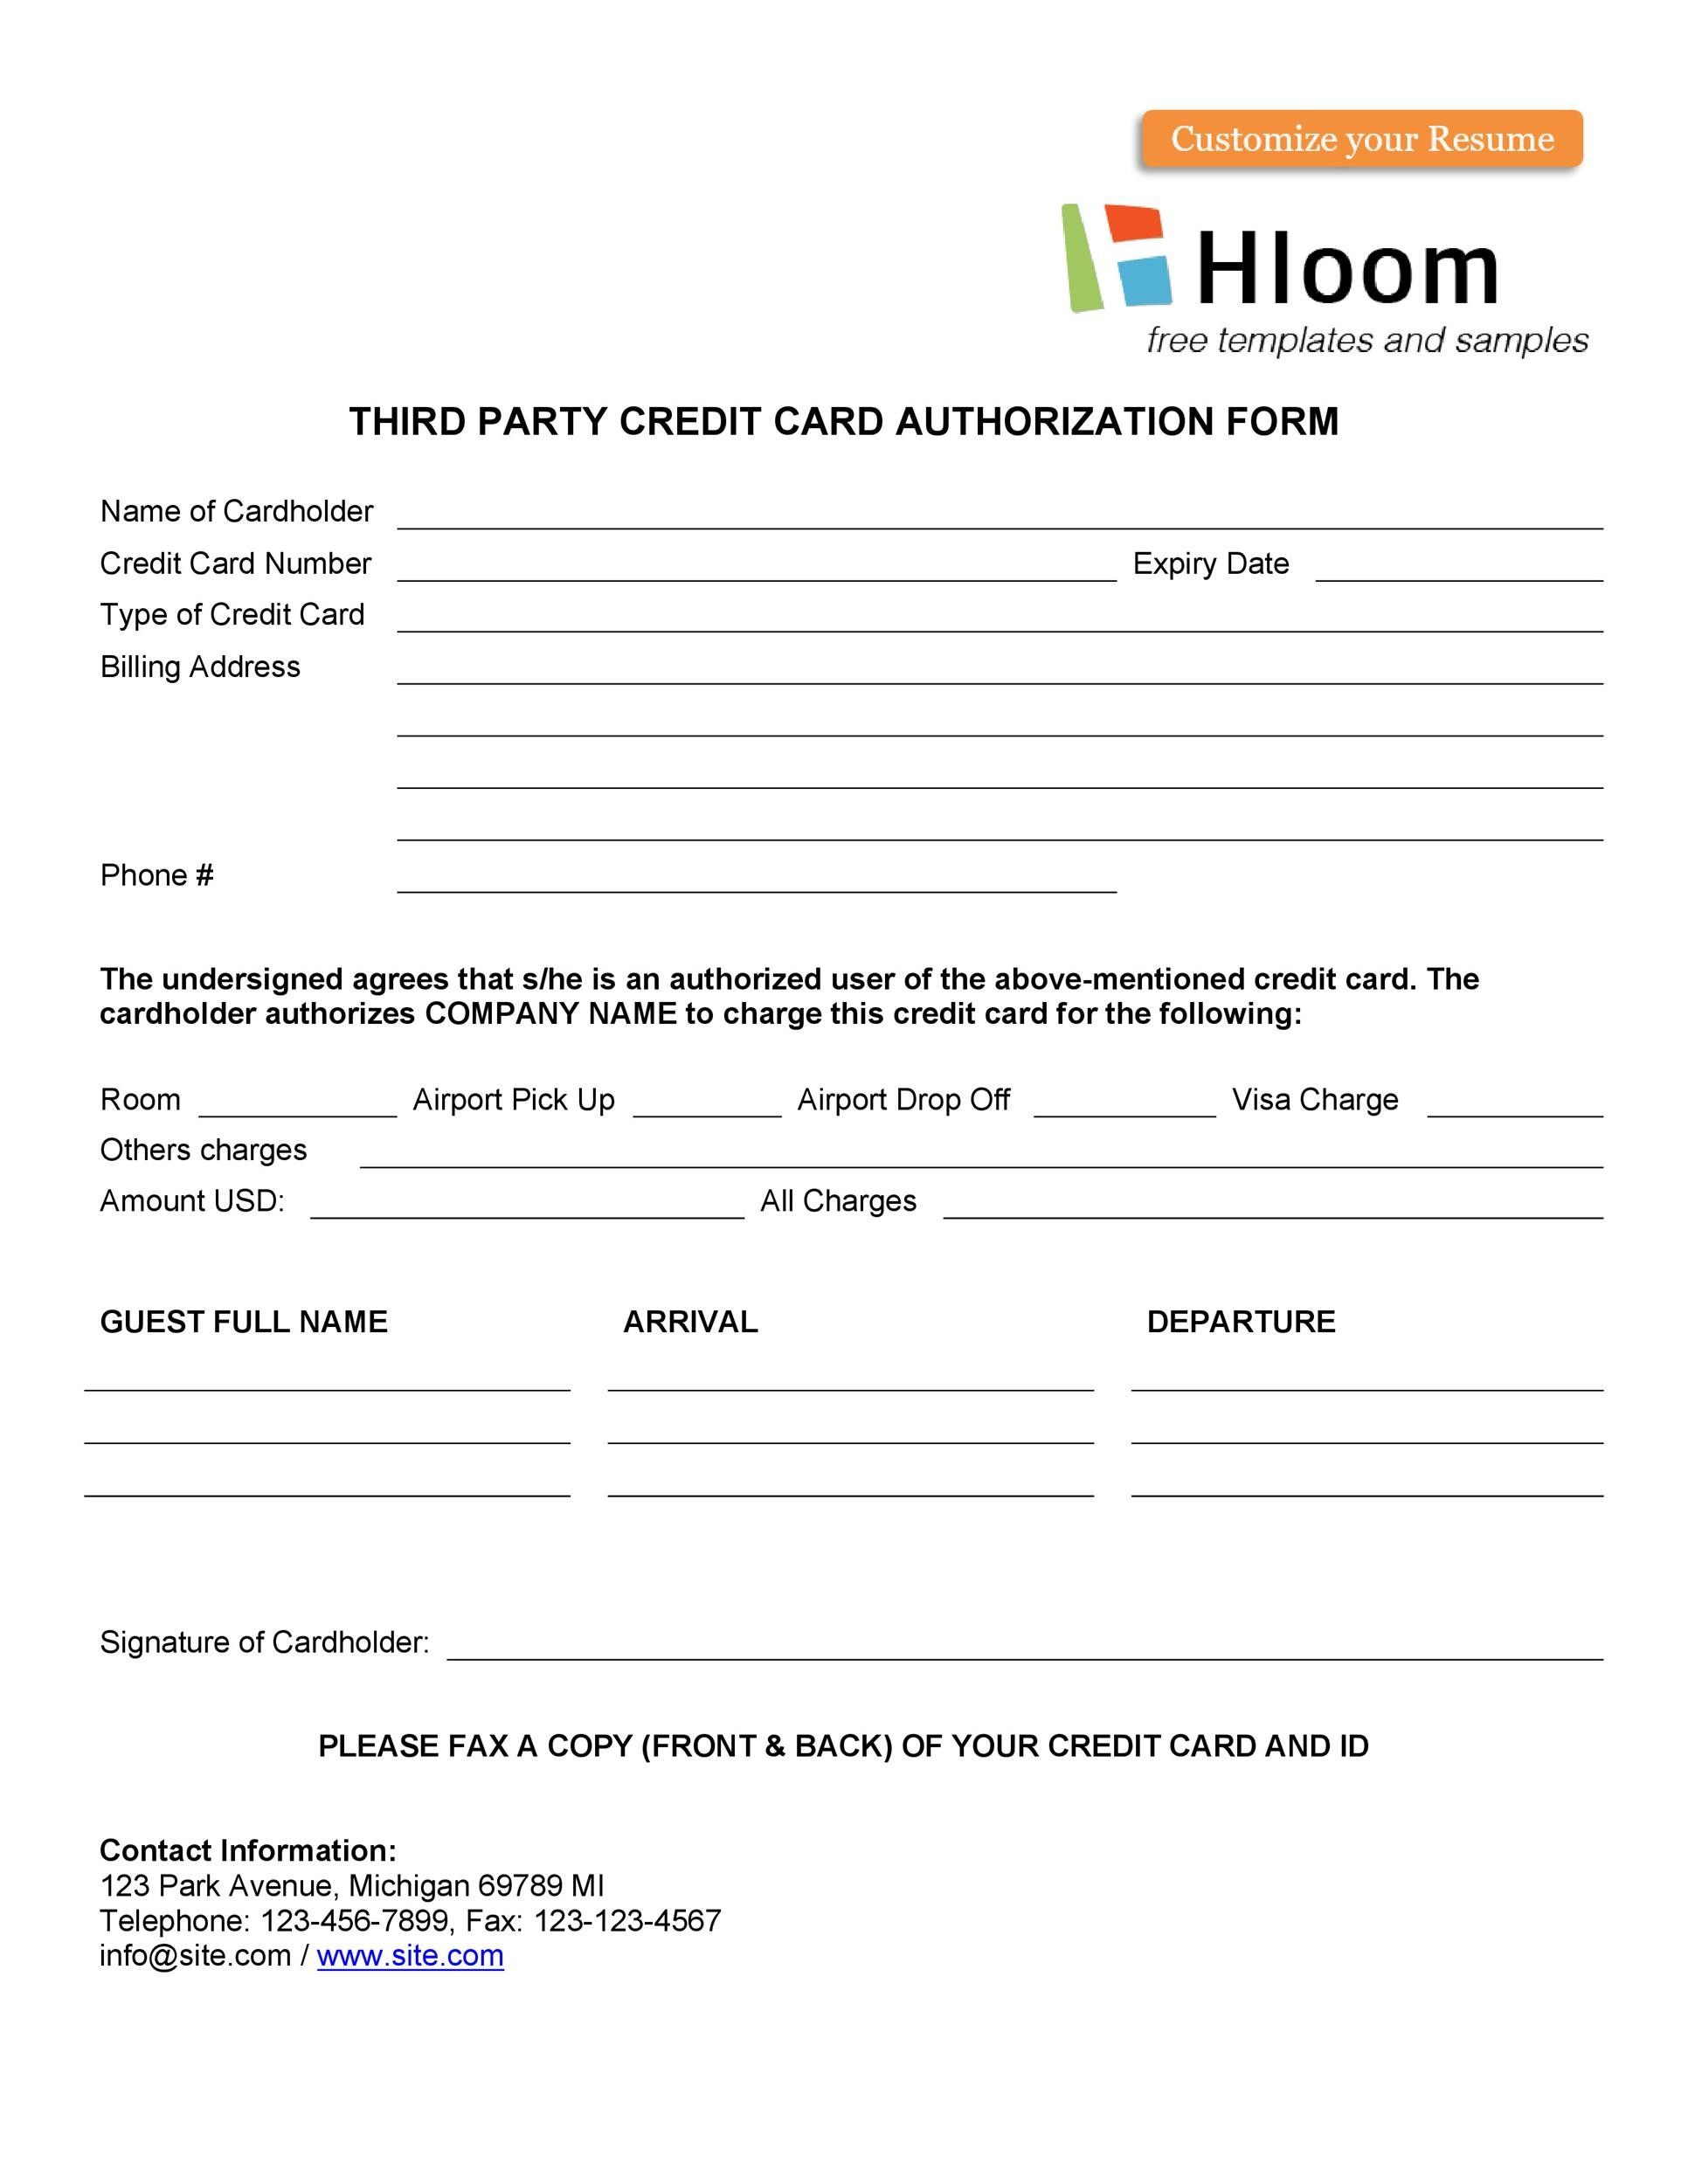 Free credit card authorization form template 15